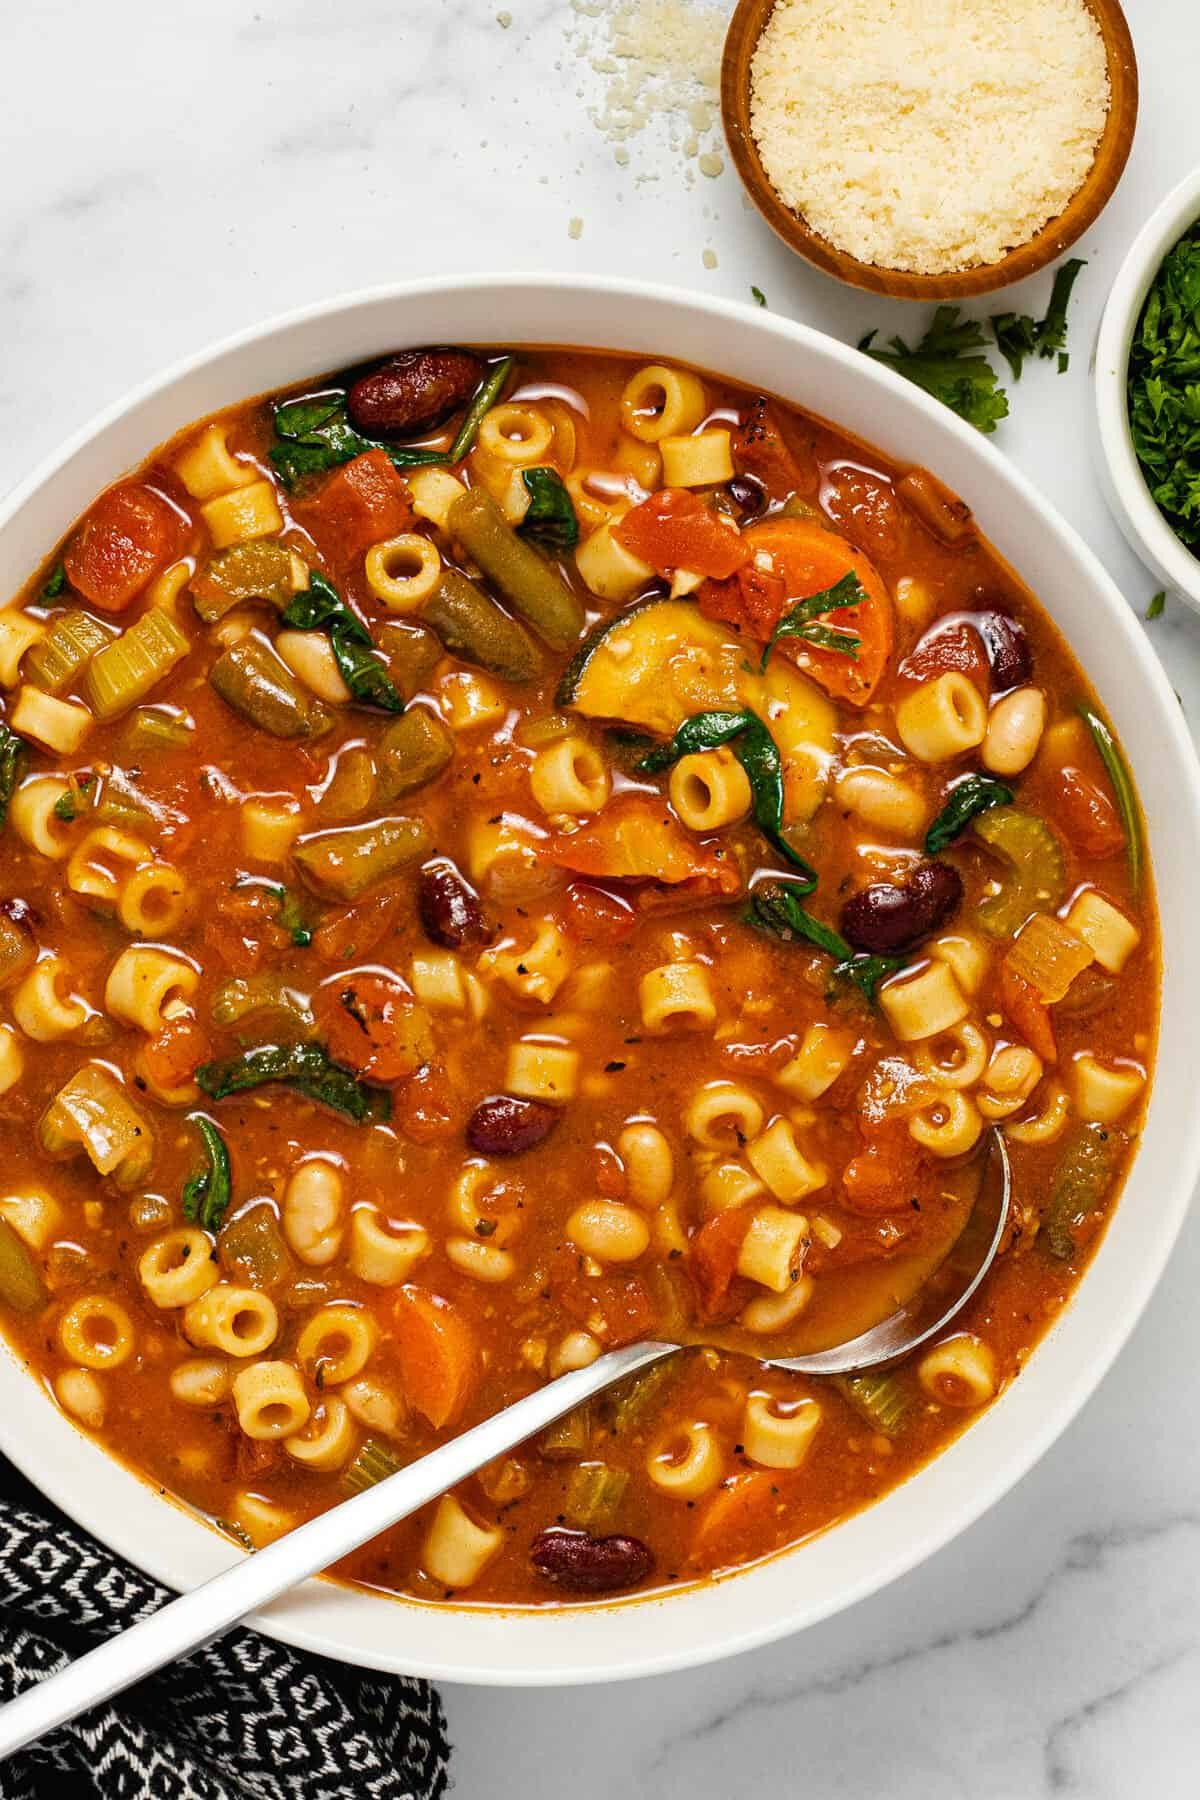 Overhead shot of a white bowl filled with vegan minestrone soup